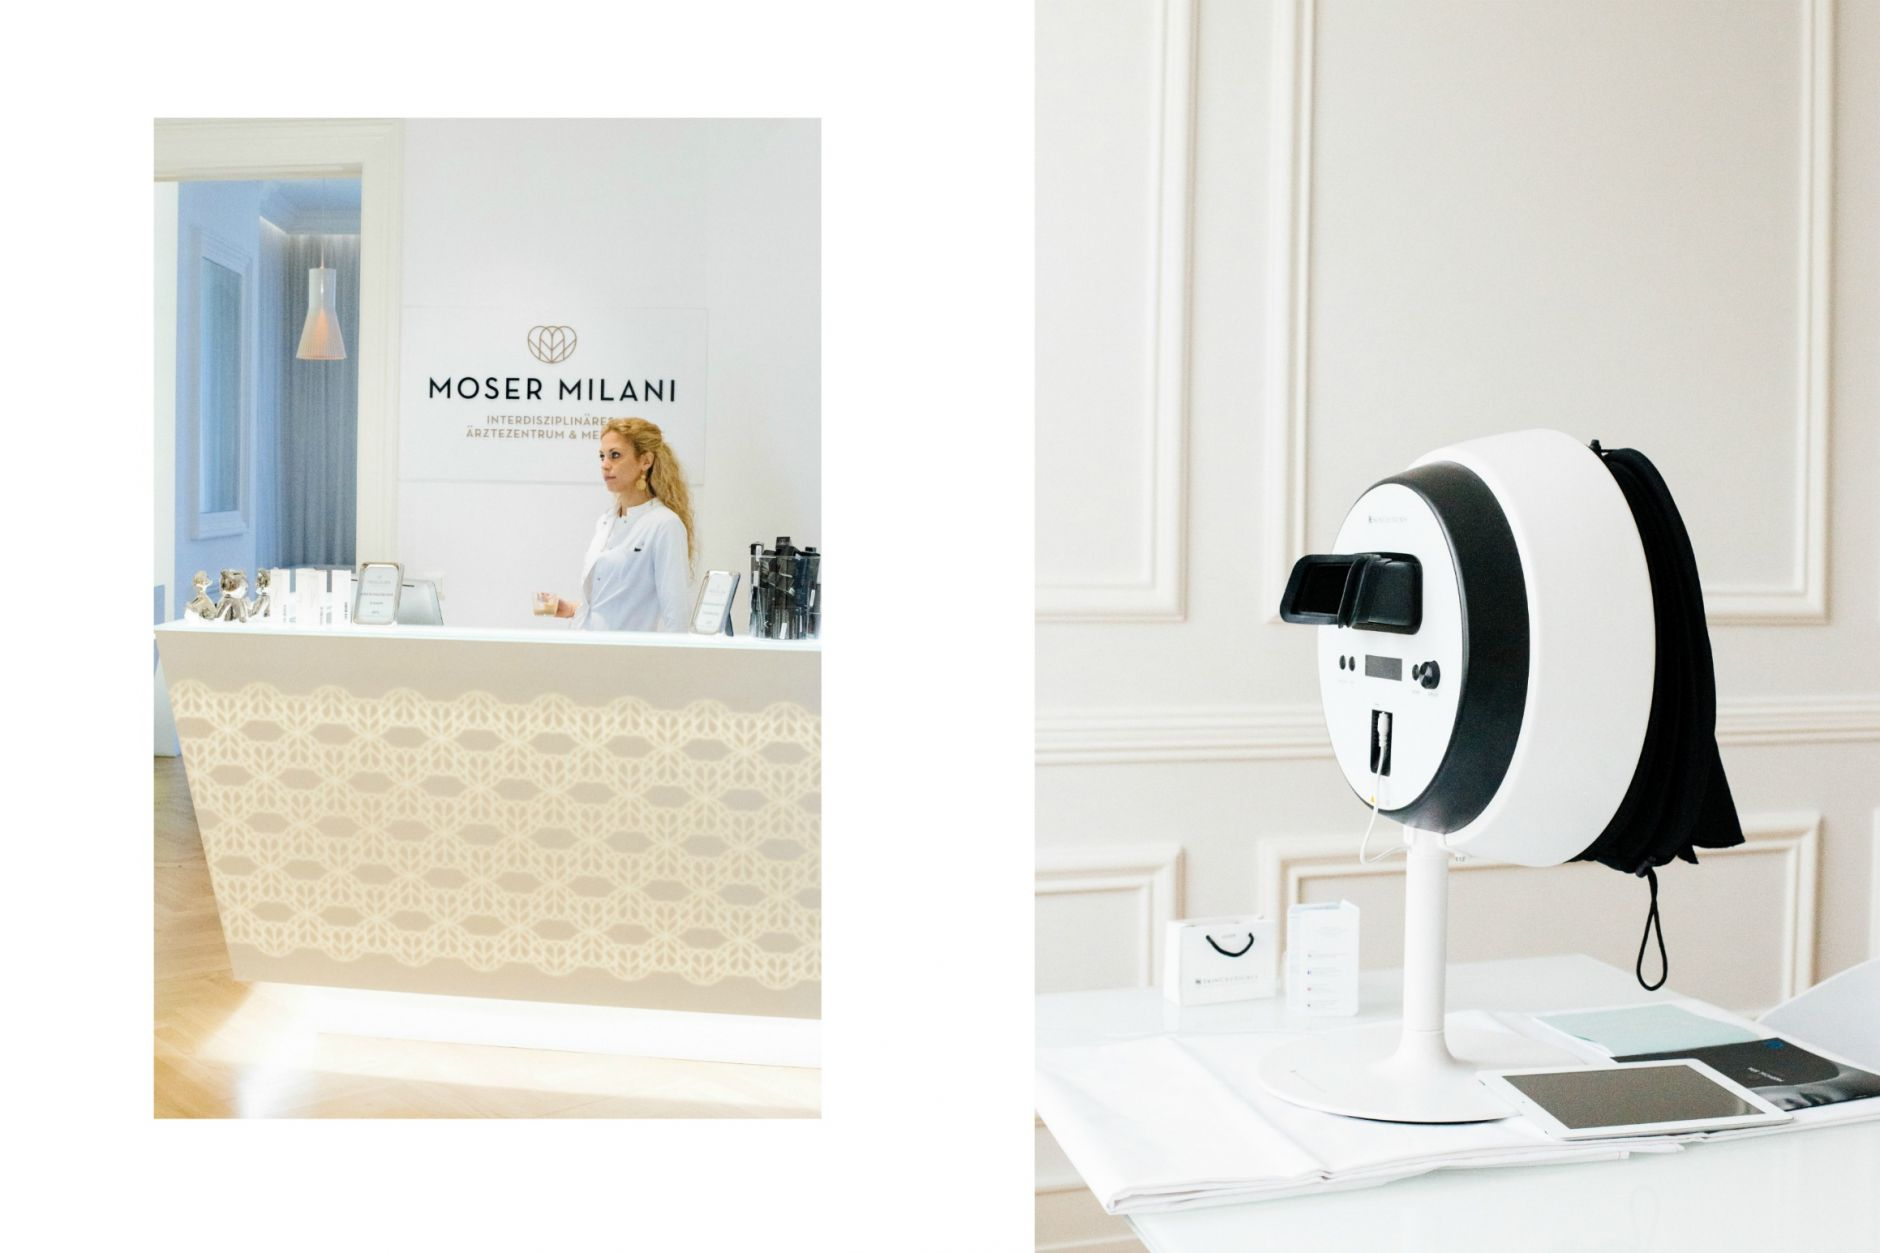 Moser-Milani-Medical-Spa-Wien-Beauty-Vienna-Beauty-Clinic-SkinCeuticals-Disi-Couture-01